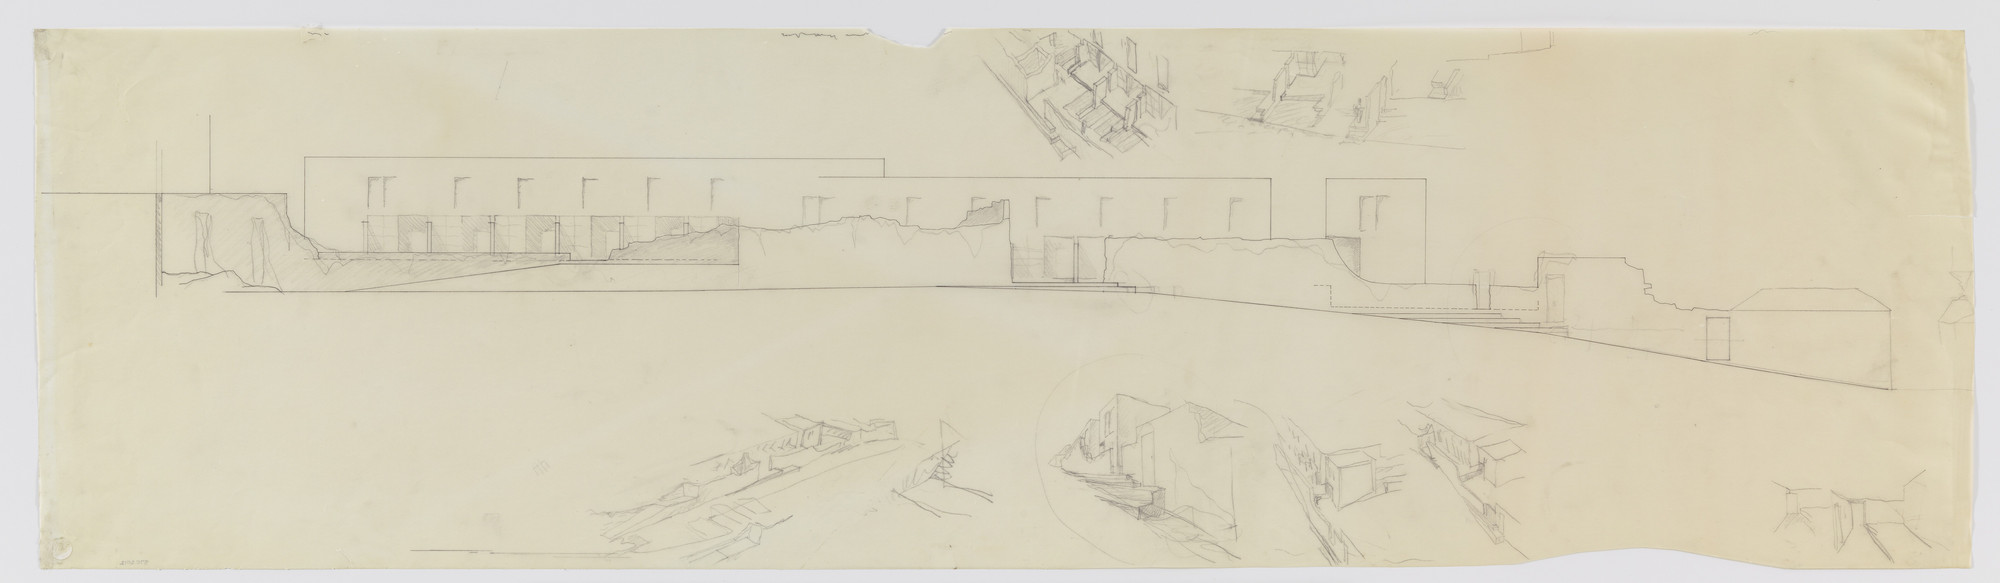 Álvaro Siza. SAAL S. Victor Social Housing, Porto, Portugal (Elevation and perspective sketches). 1974-1977